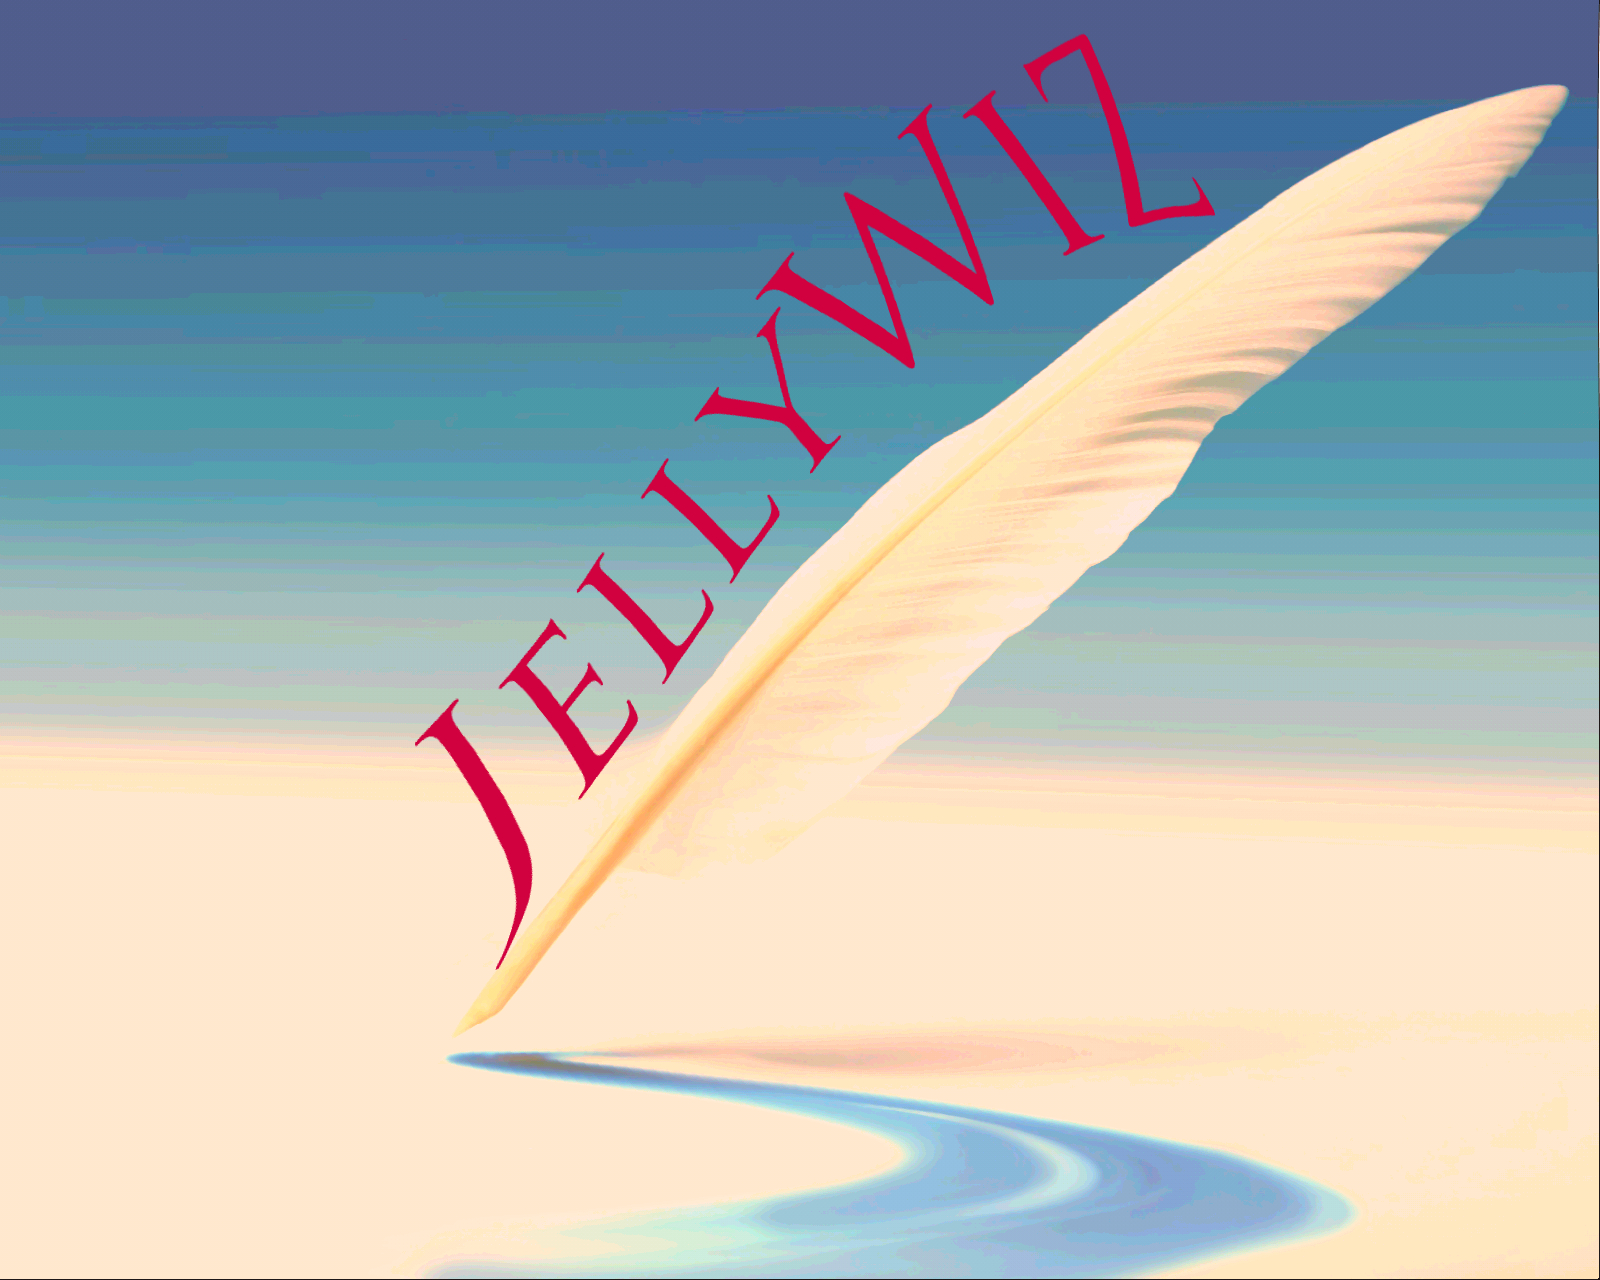 Jellywiz.jpeg?dl=1